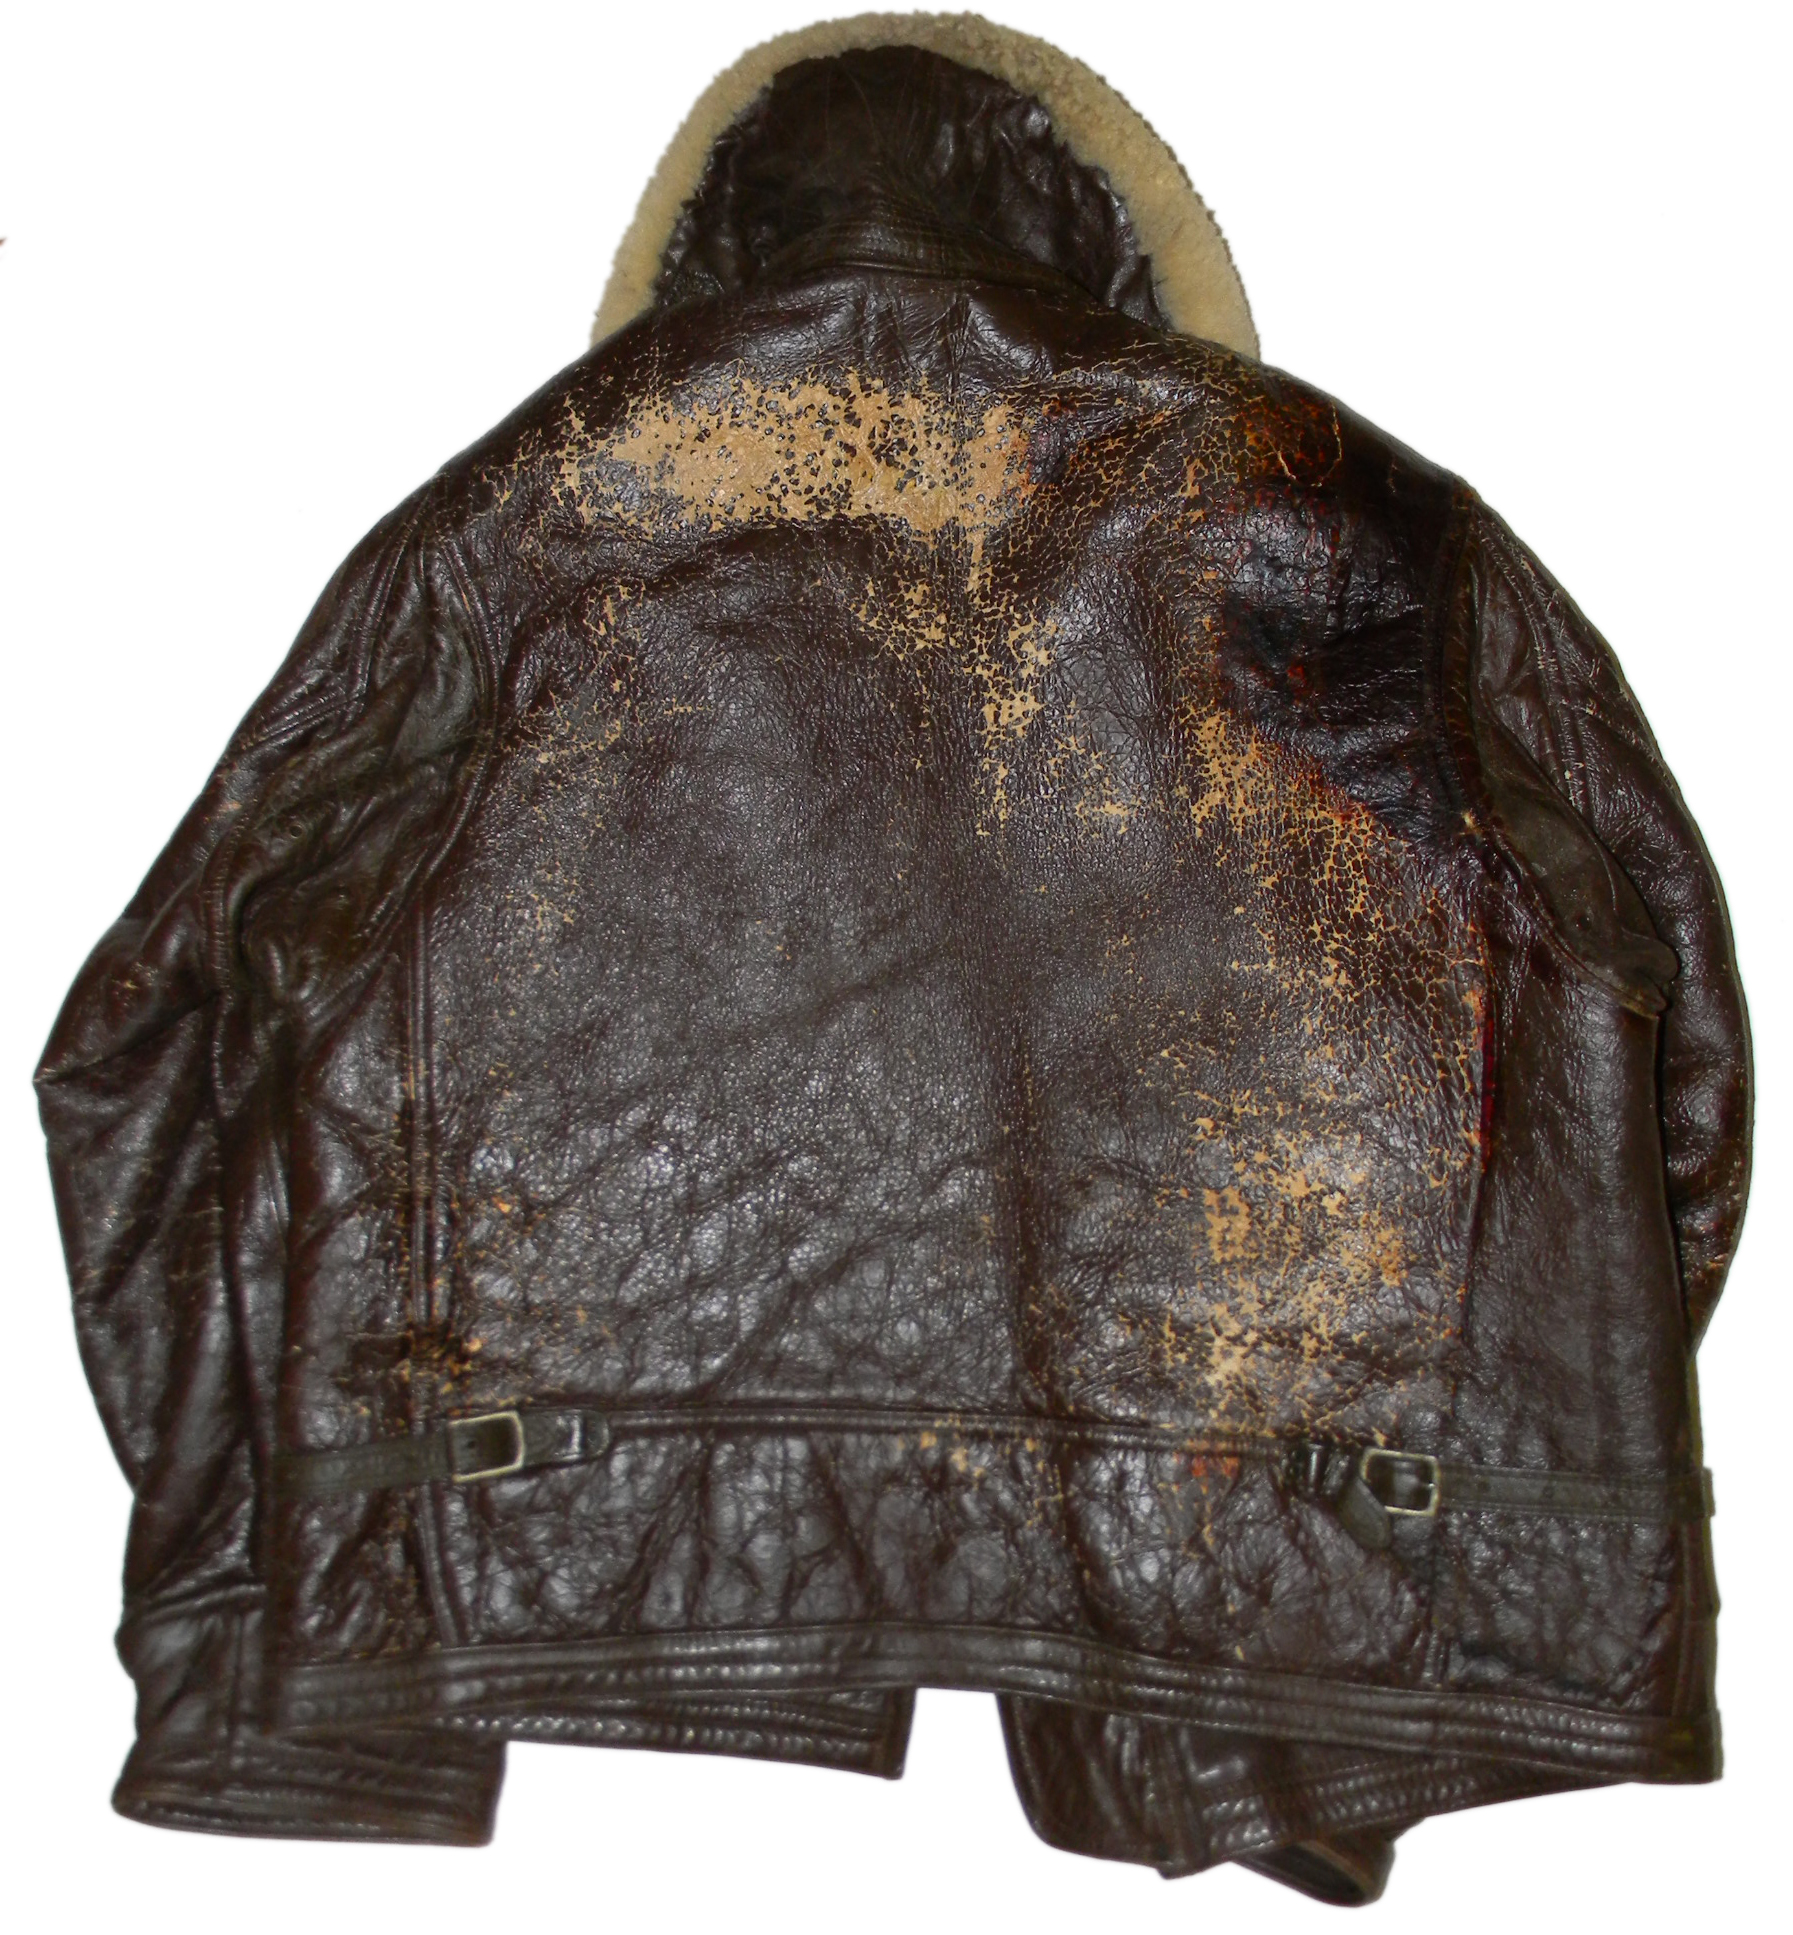 AAF AN-J-4 jacket